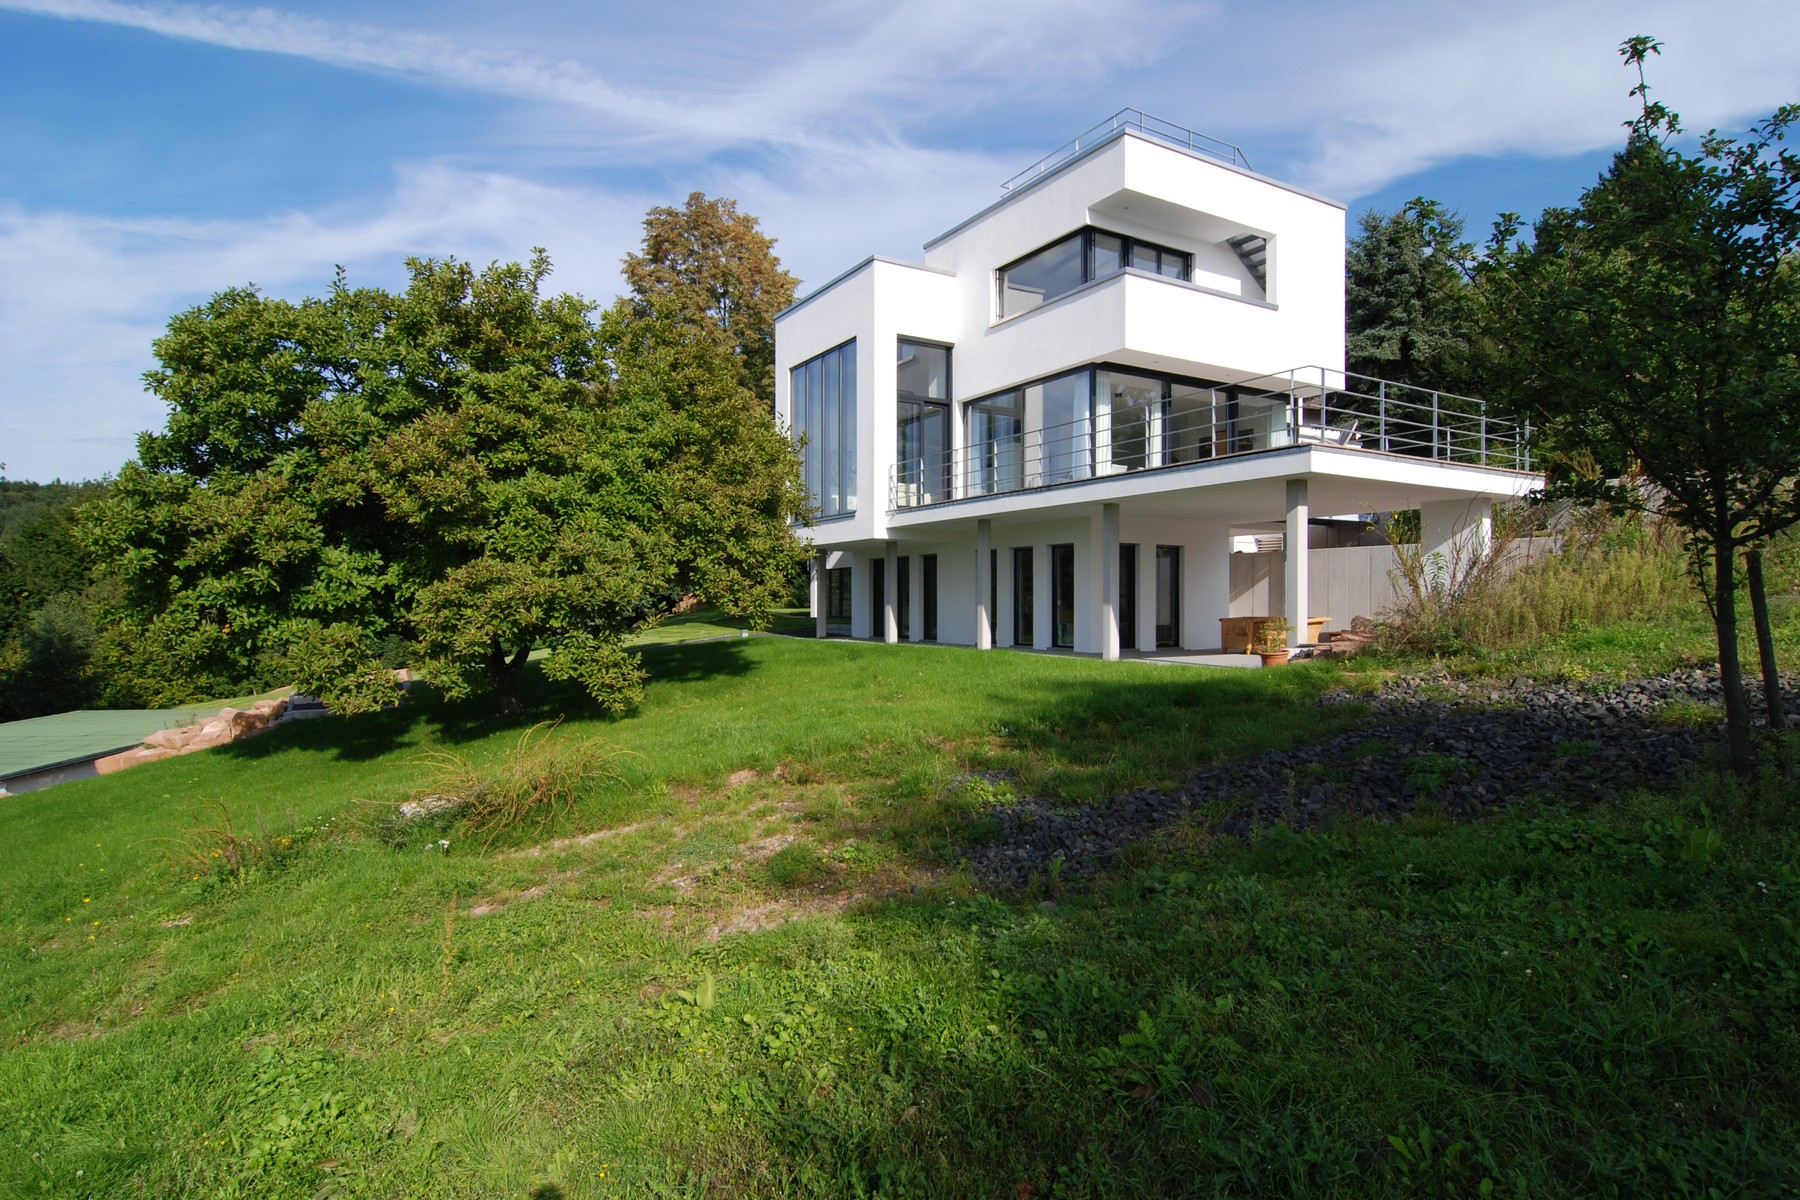 Moradia para Venda às Architectural Masterpiece - Only Forty Minutes From Frankfurt Center Frankfurt, Hessen, 60323 Alemanha